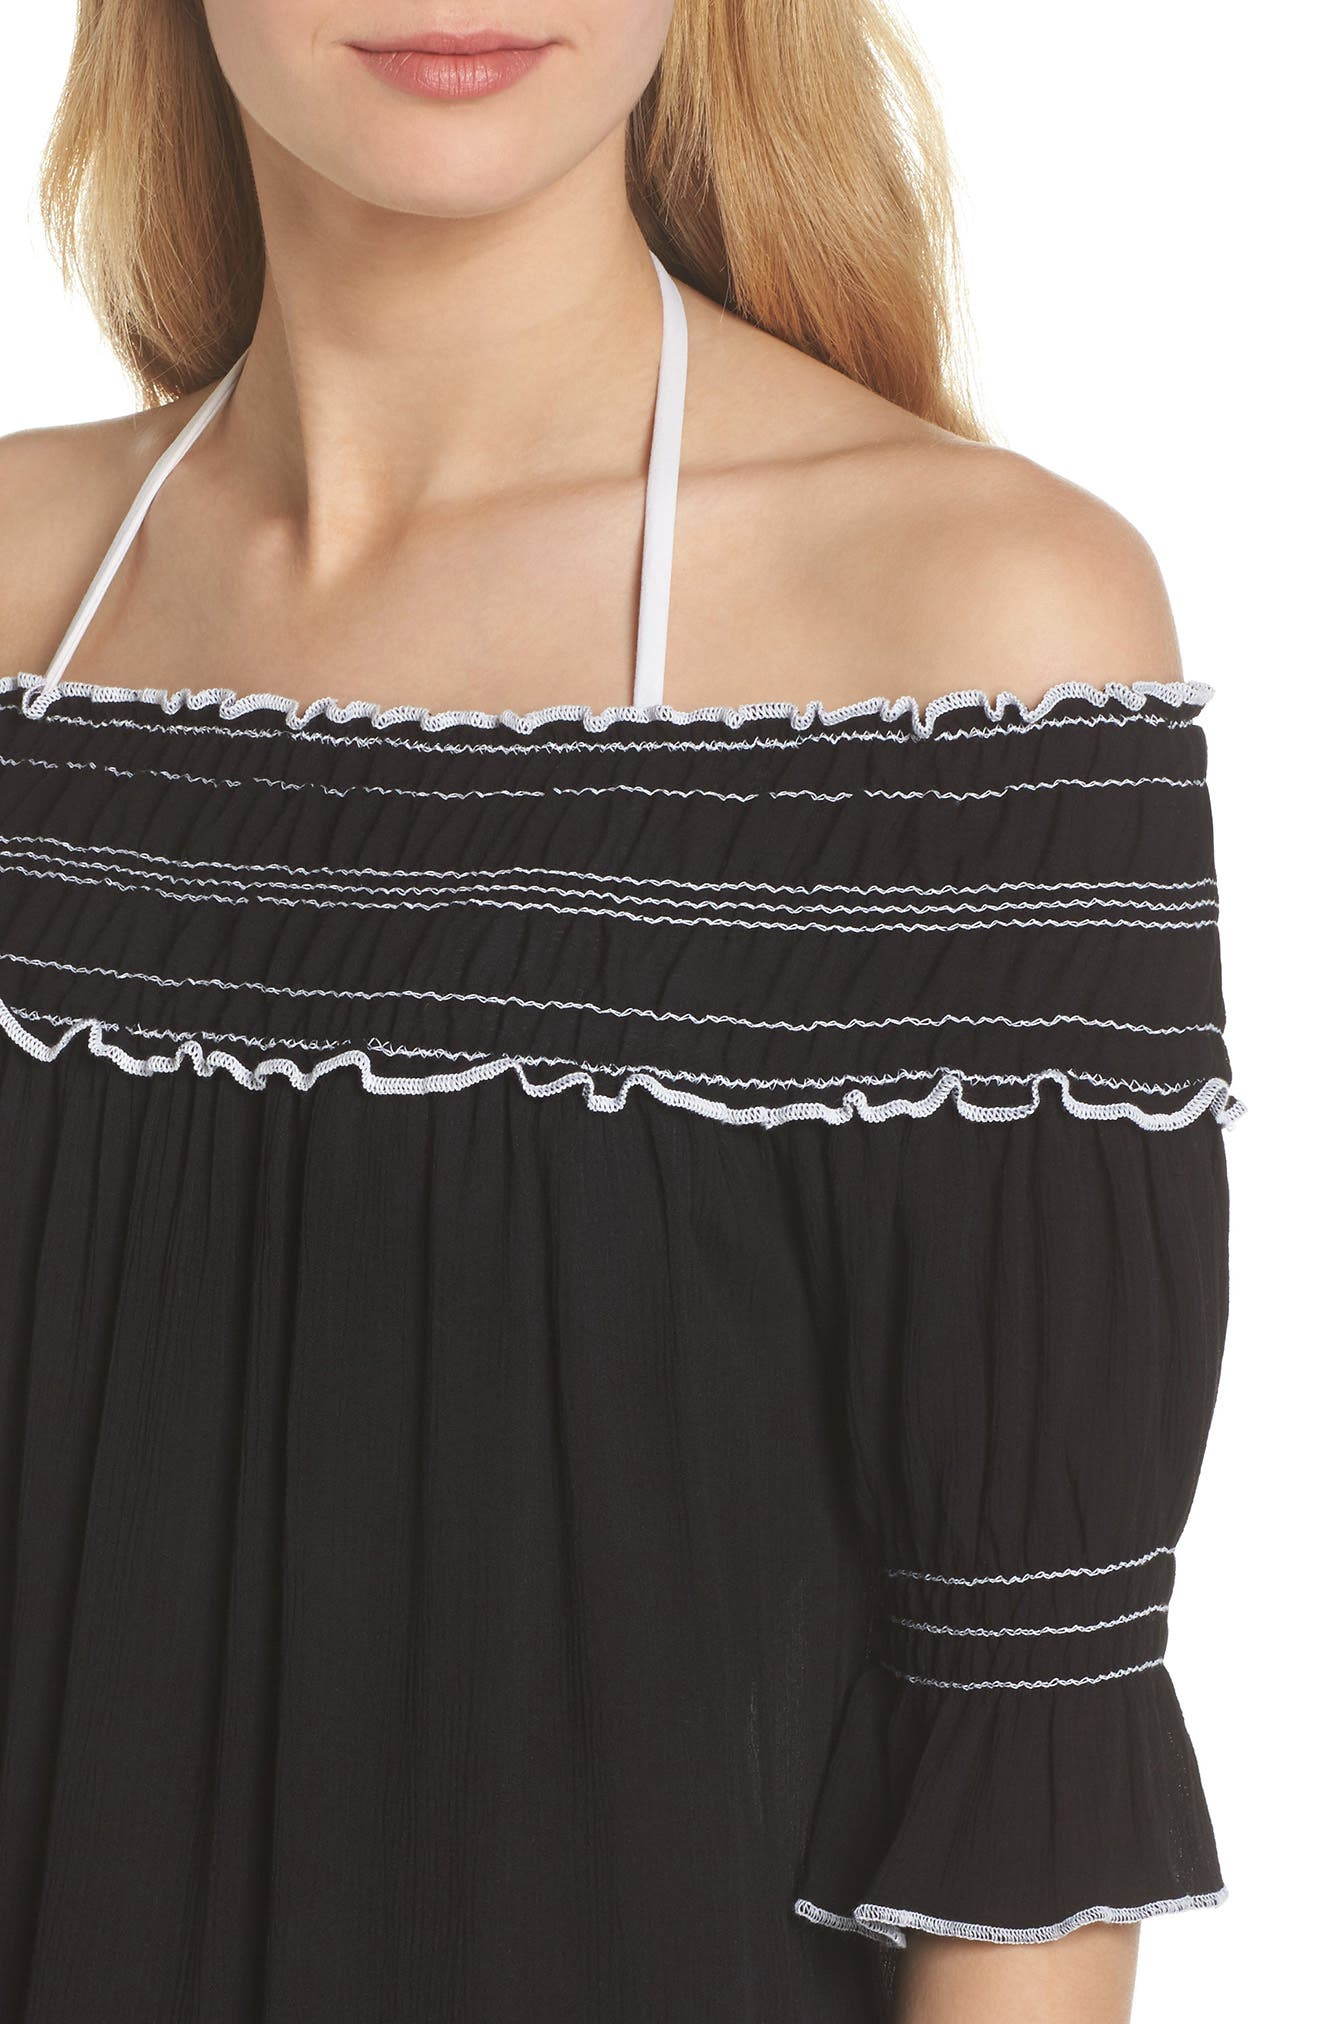 Nightingale Off the Shoulder Cover-Up Dress,                             Alternate thumbnail 4, color,                             001